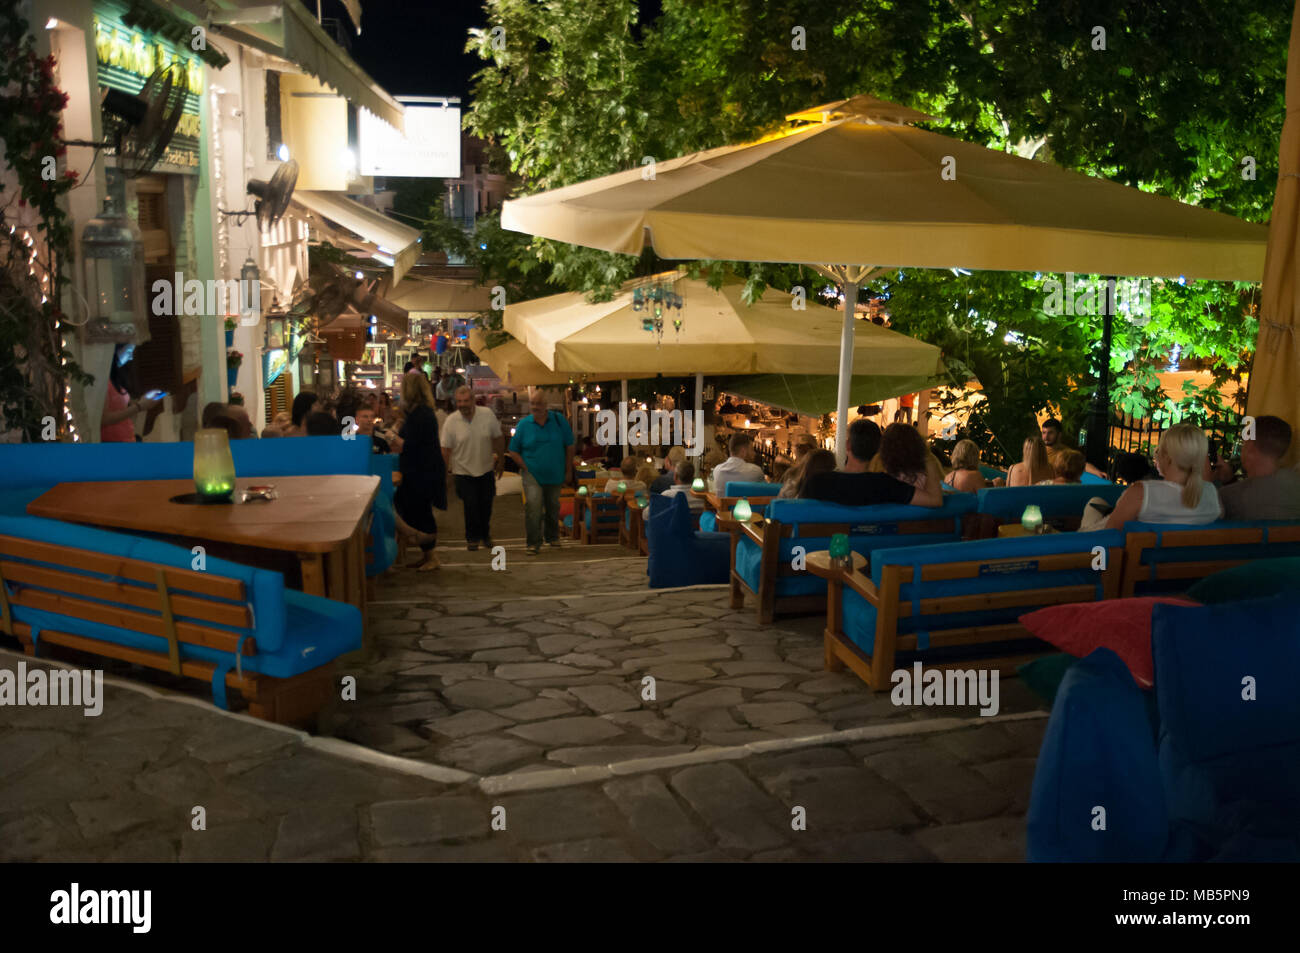 Tourists enjoying a warm evening on the steps of the Rock'n'Roll taverna, Skiathos, Greece. - Stock Image